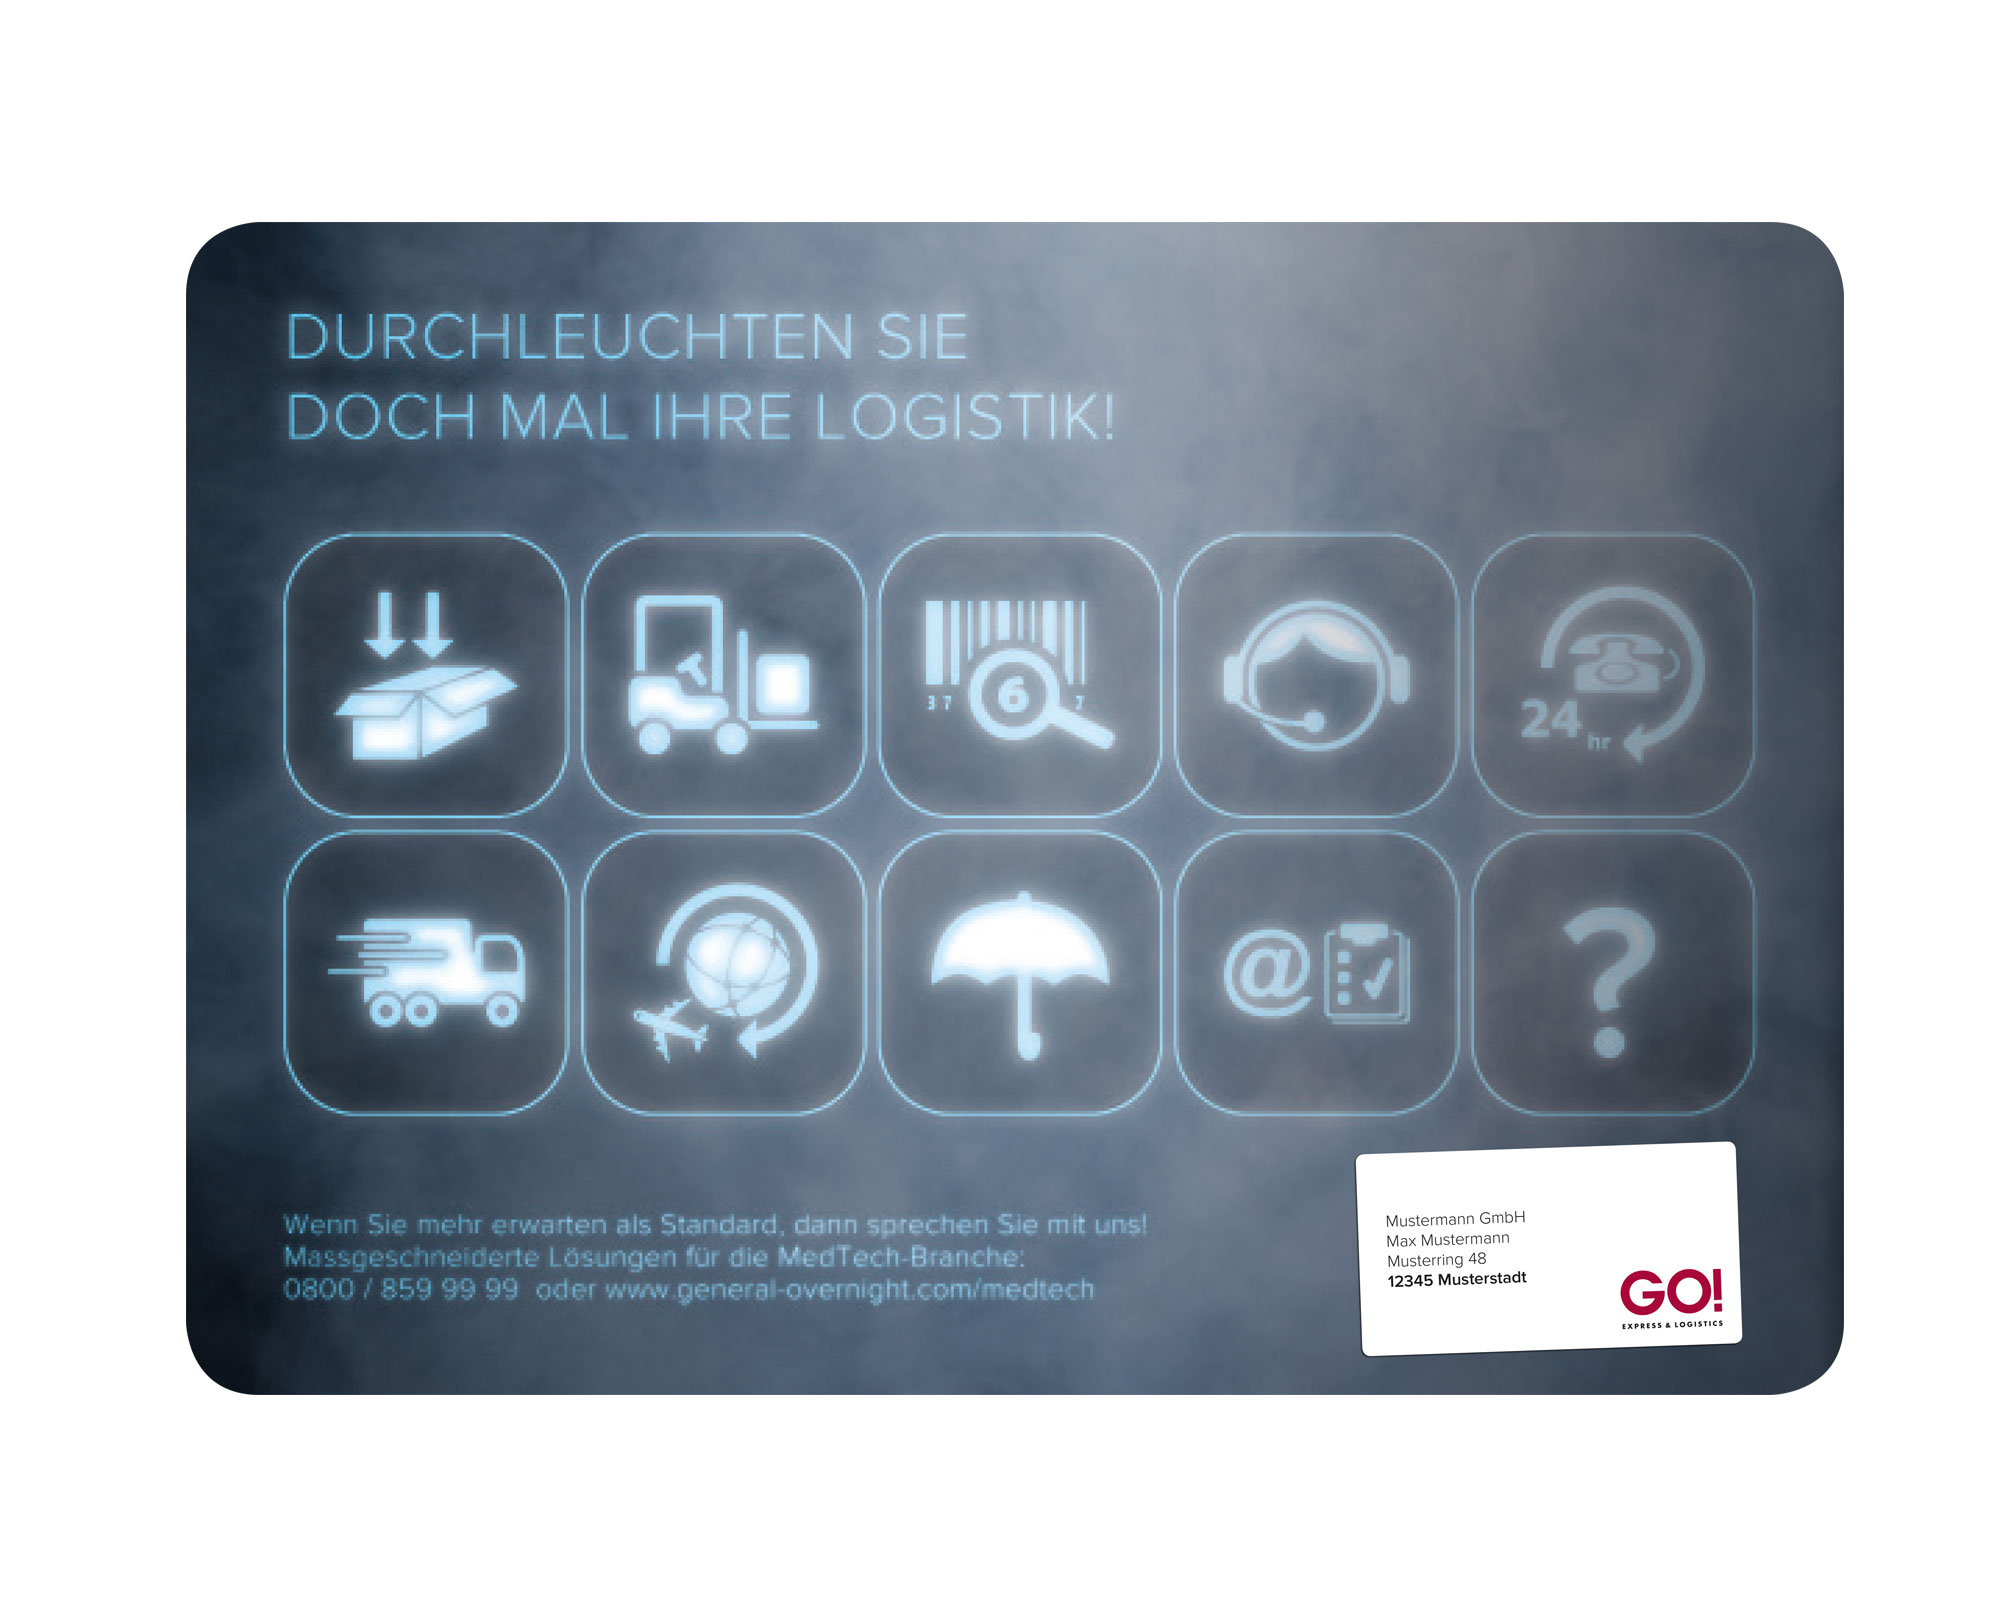 GO! Express & Logistics – Direct Mail – ‹Medizintechnik›